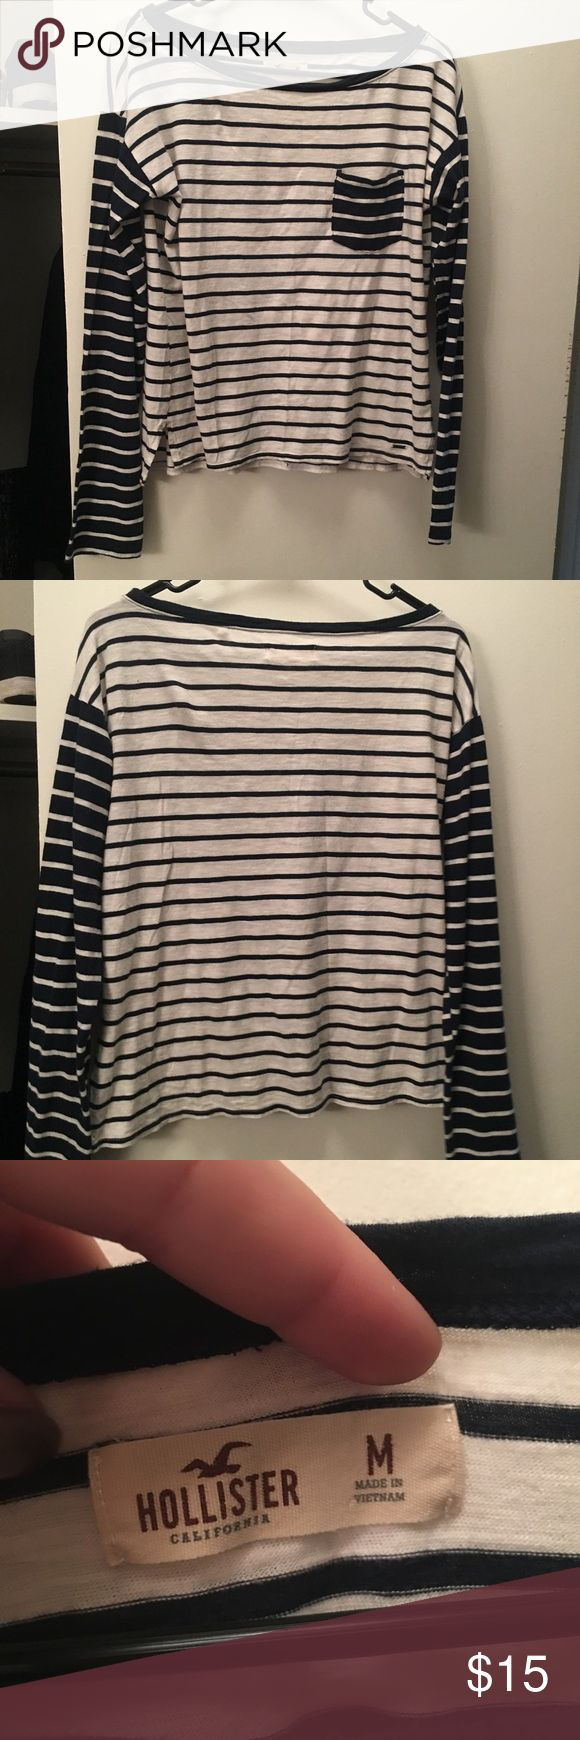 Hollister Nautical Tee Super cute Hollister Long sleeve nautical tee. Blue and white striped. Only worn once. Hollister Tops Tees - Long Sleeve